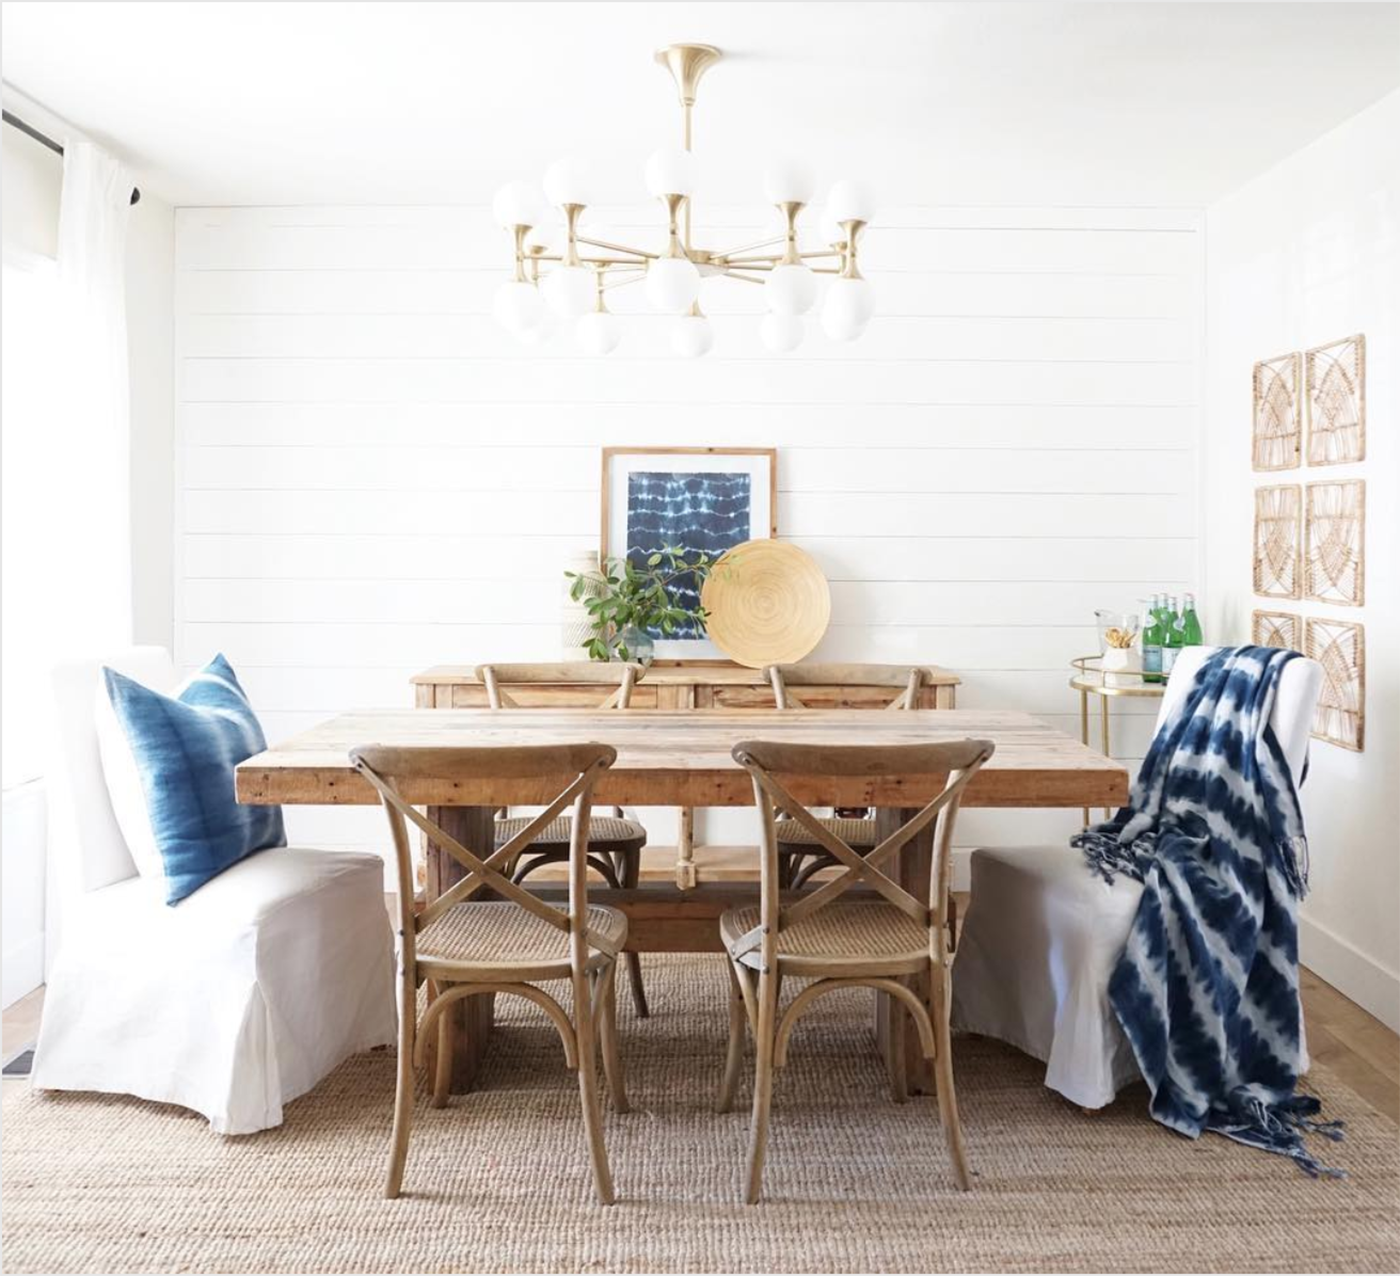 Casual Dining Room Decor Ideas: The Most Pinteresting Things This Month - August